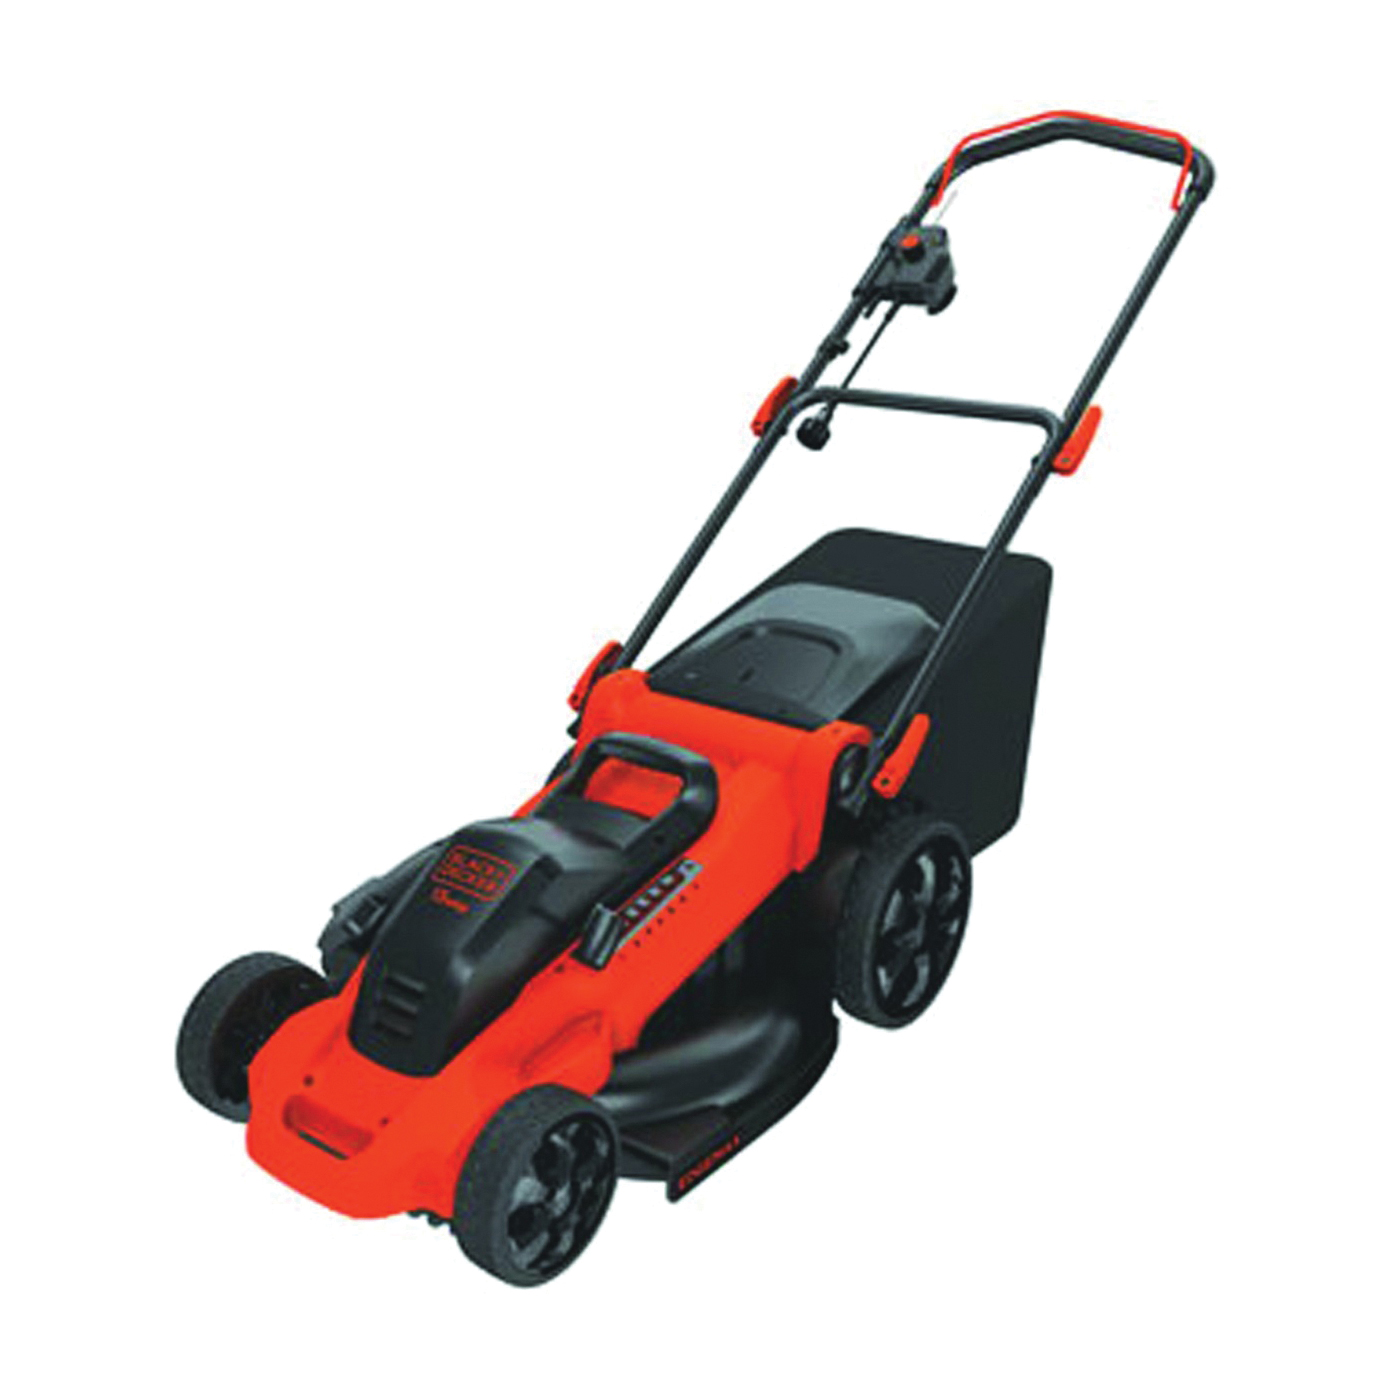 Picture of Black+Decker MM2000 Lawn Mower, 13 A, 120 V, 20 in W Cutting